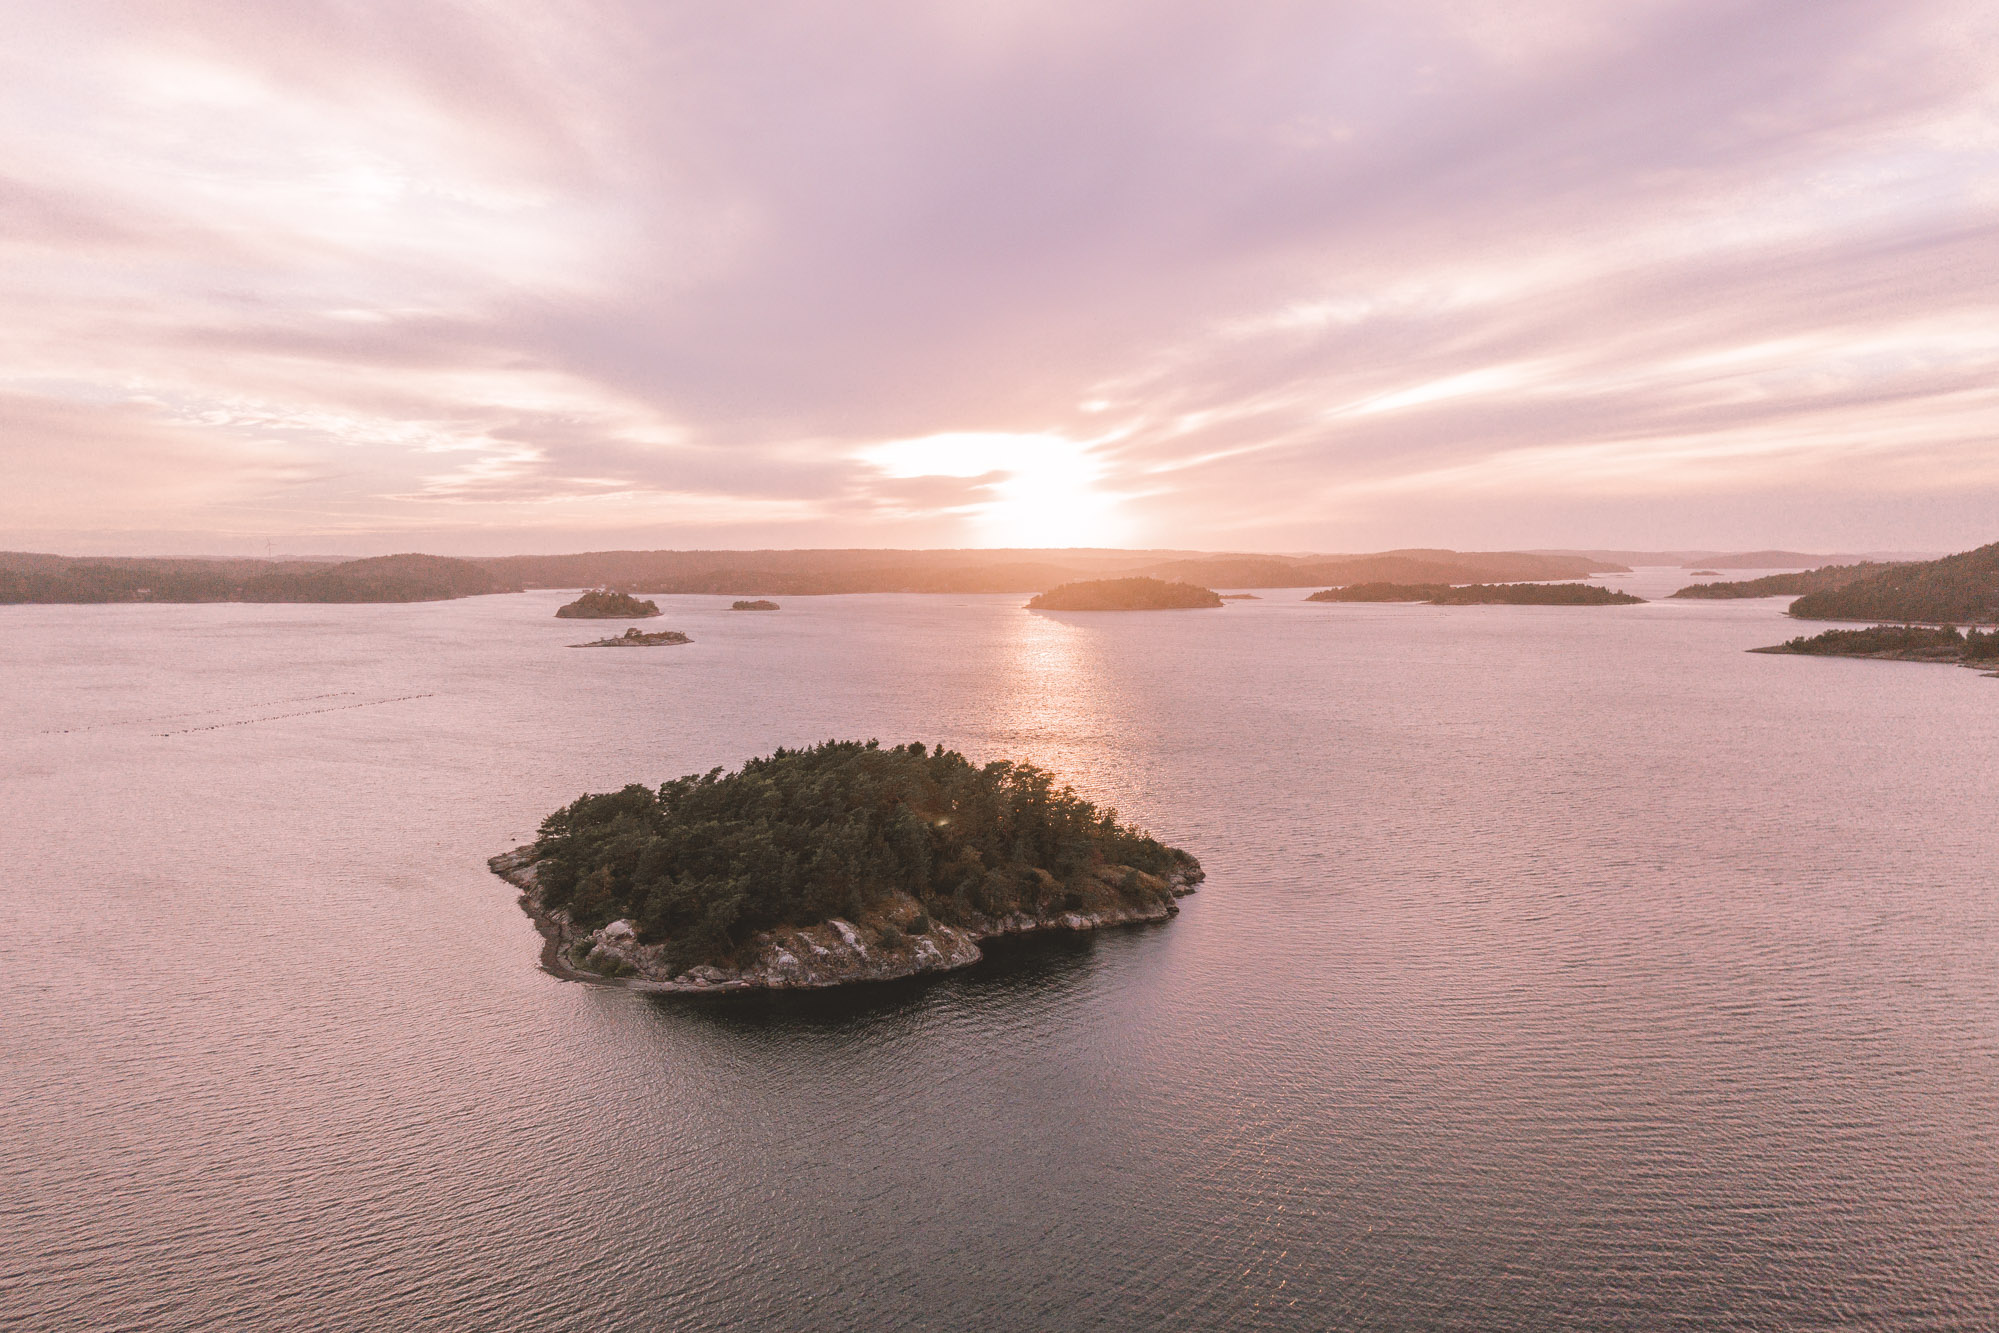 West Sweden's islands and coast | West Sweden Travel Guide via @finduslost